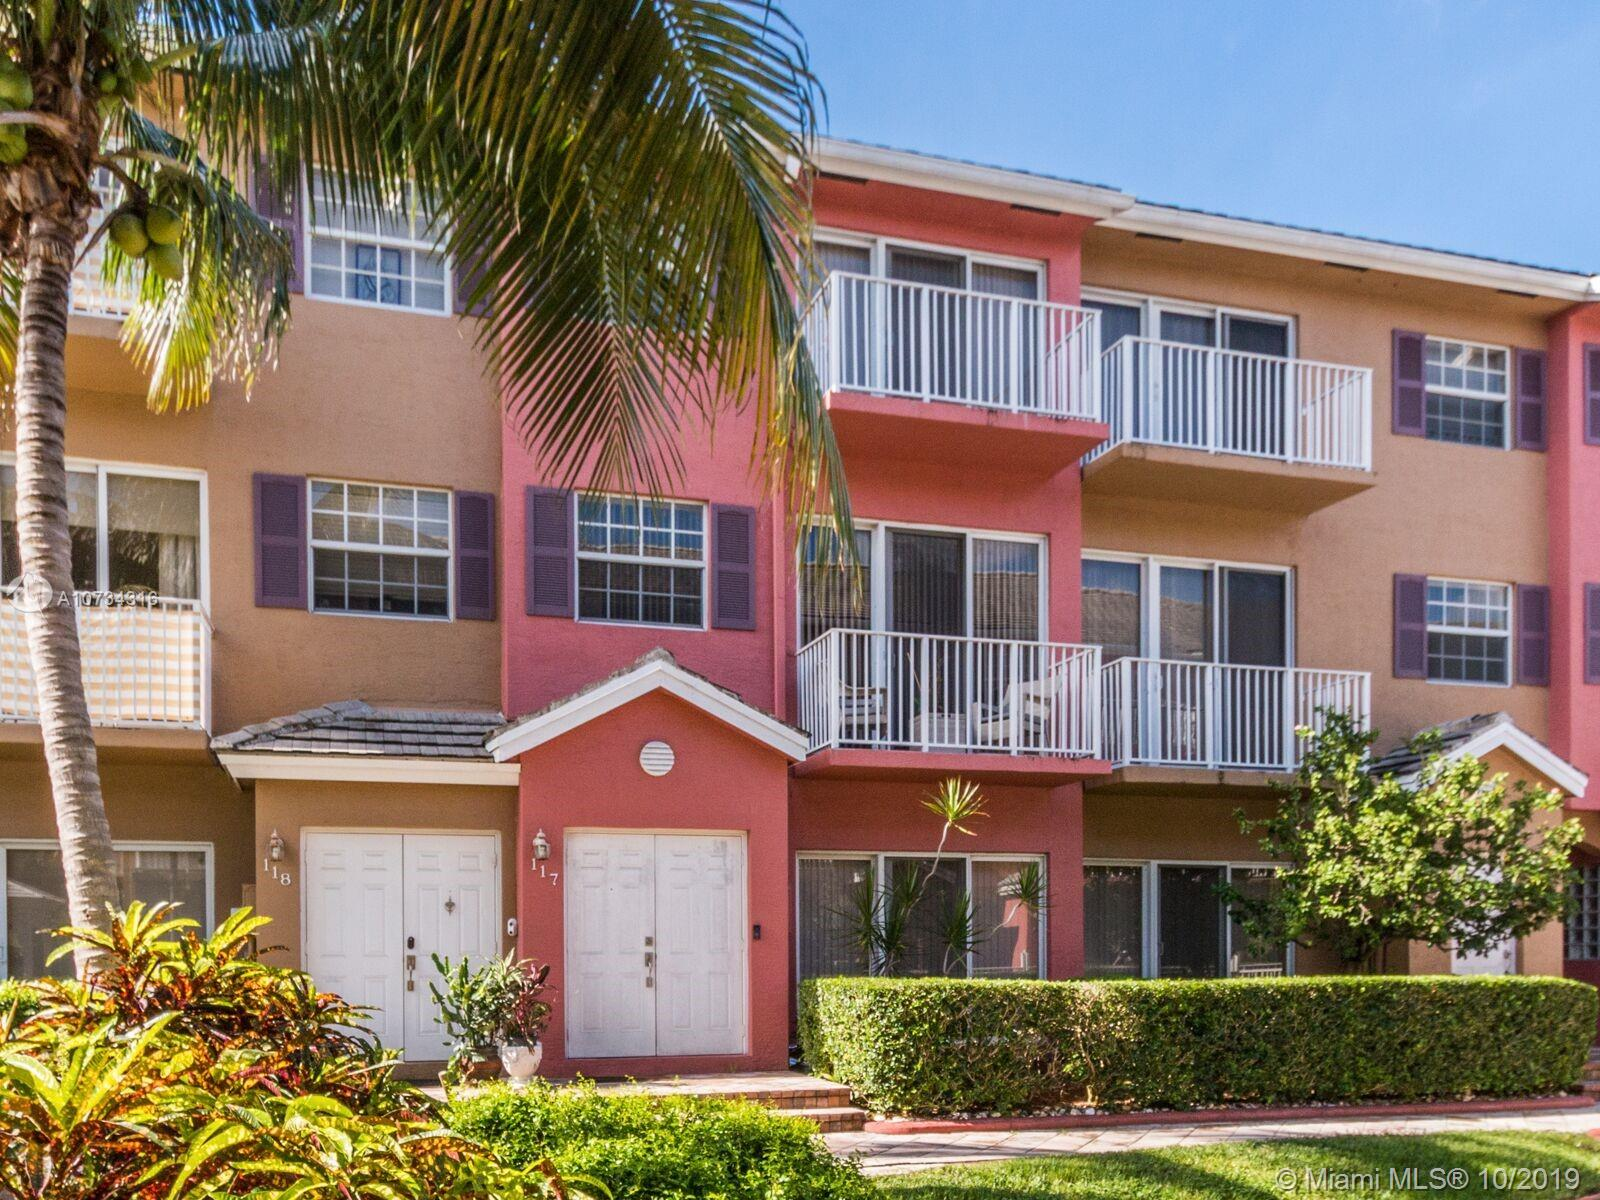 Beautiful 3 bed 3.5 bath townhouse located in the heart of Wilton Manors. Home features updated kitchen with granite counter and S.S. Appliances.  Entry level includes guest bedroom/bathroom. Main floor is very spacious & open perfect for entertaining. Master bedroom features large walk in closet. 2 car garage allows for ample parking & storage. Additional parking in front. Walking distance to Wilton Drive, shopping, restaurants & night life.  Easy to show, call today!